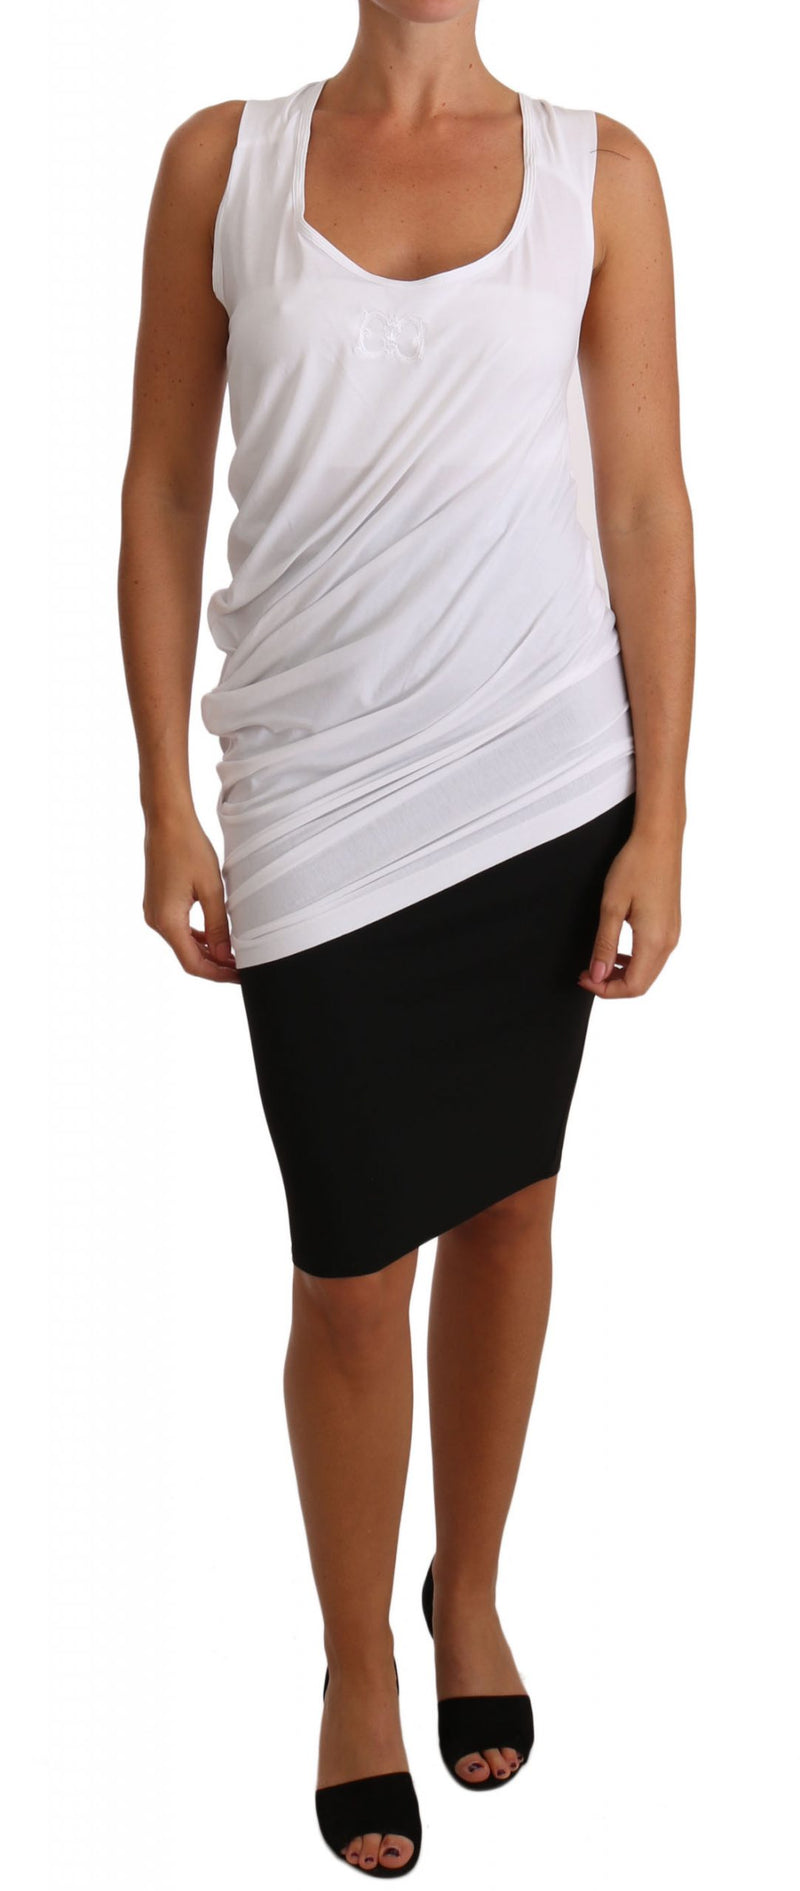 White Top Tank CAVALLI T-Shirt Jersey